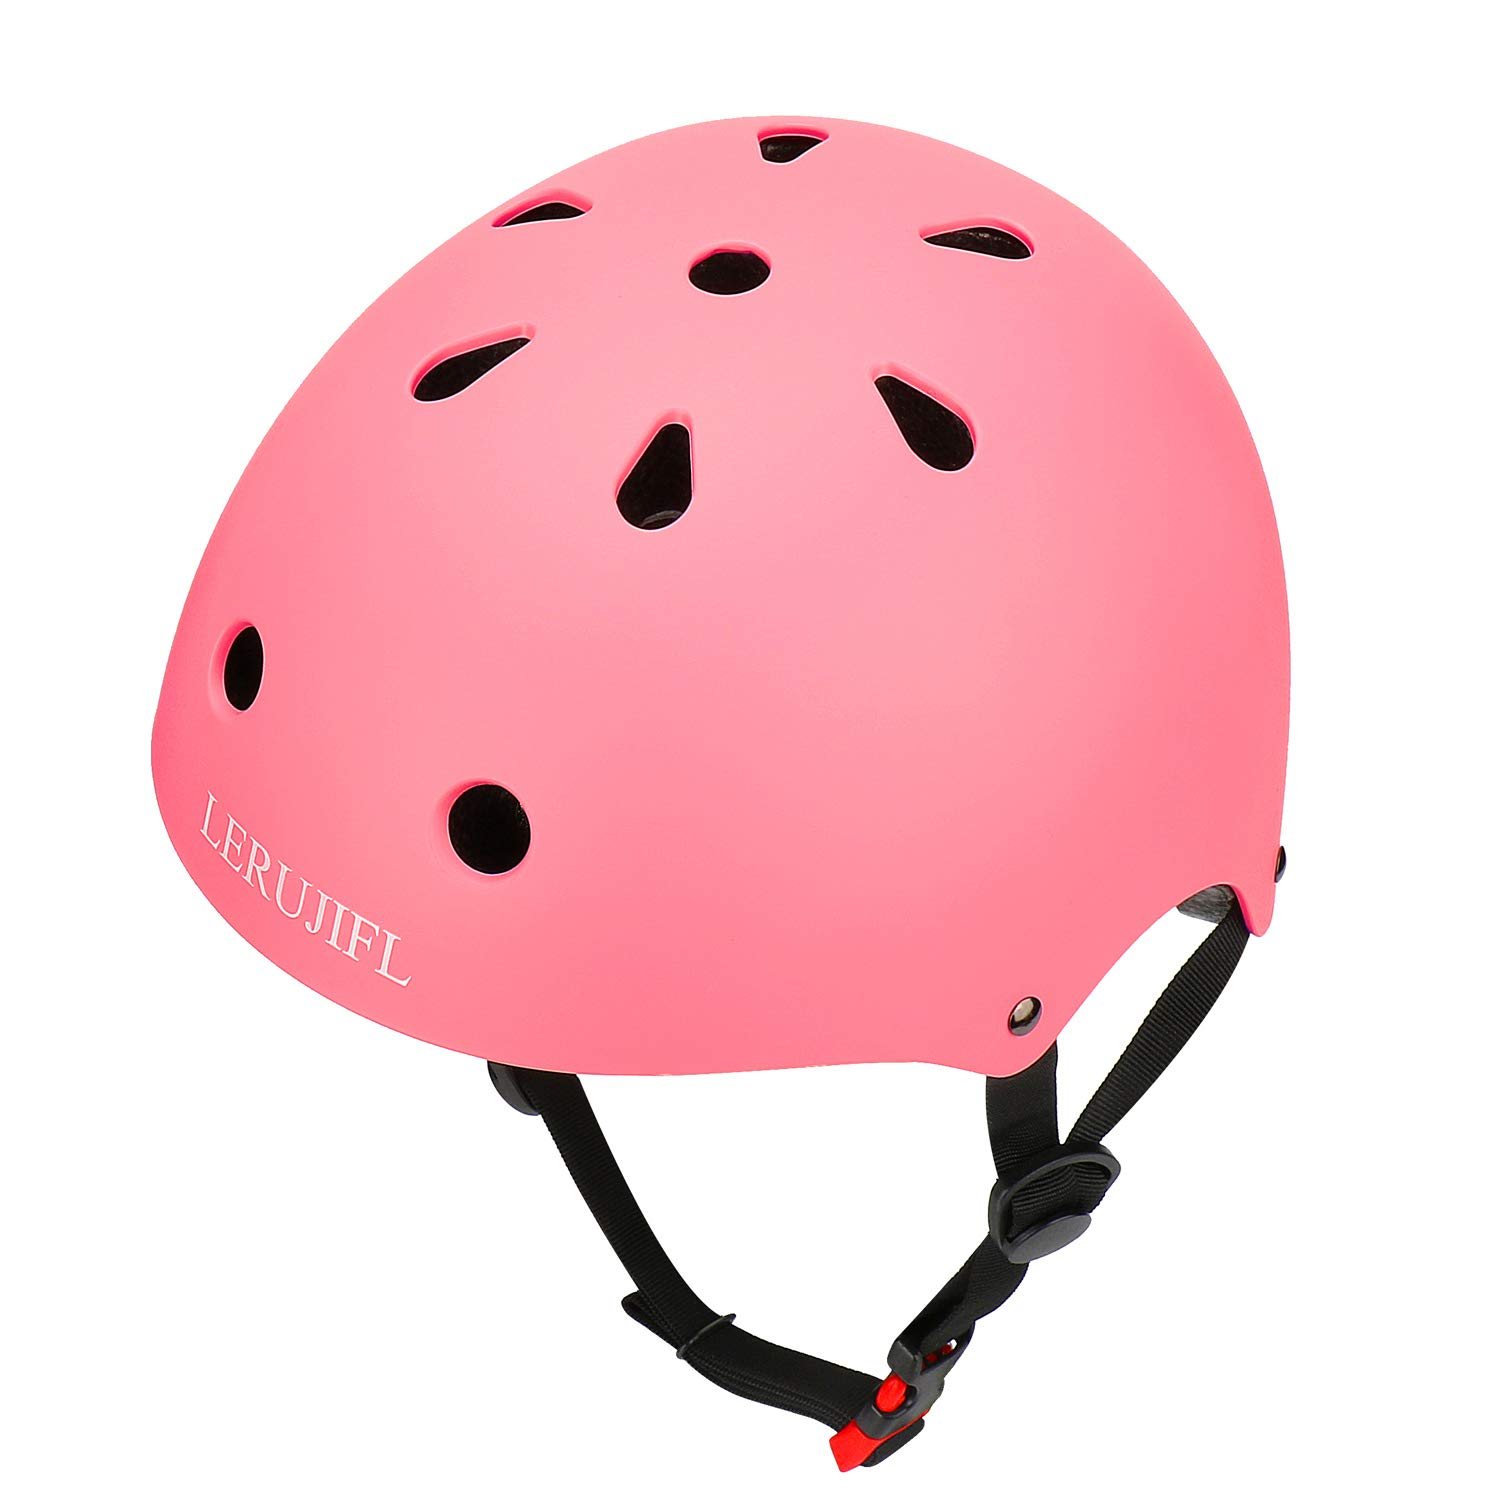 LERUJIFL Kids Helmet Adjustable from Toddler to Youth Size,Ages 3 to 8 Years Old Boys Girls Multi-Sports Safety Cycling Skating Scooter Helmet – CSPC Certified for Safety